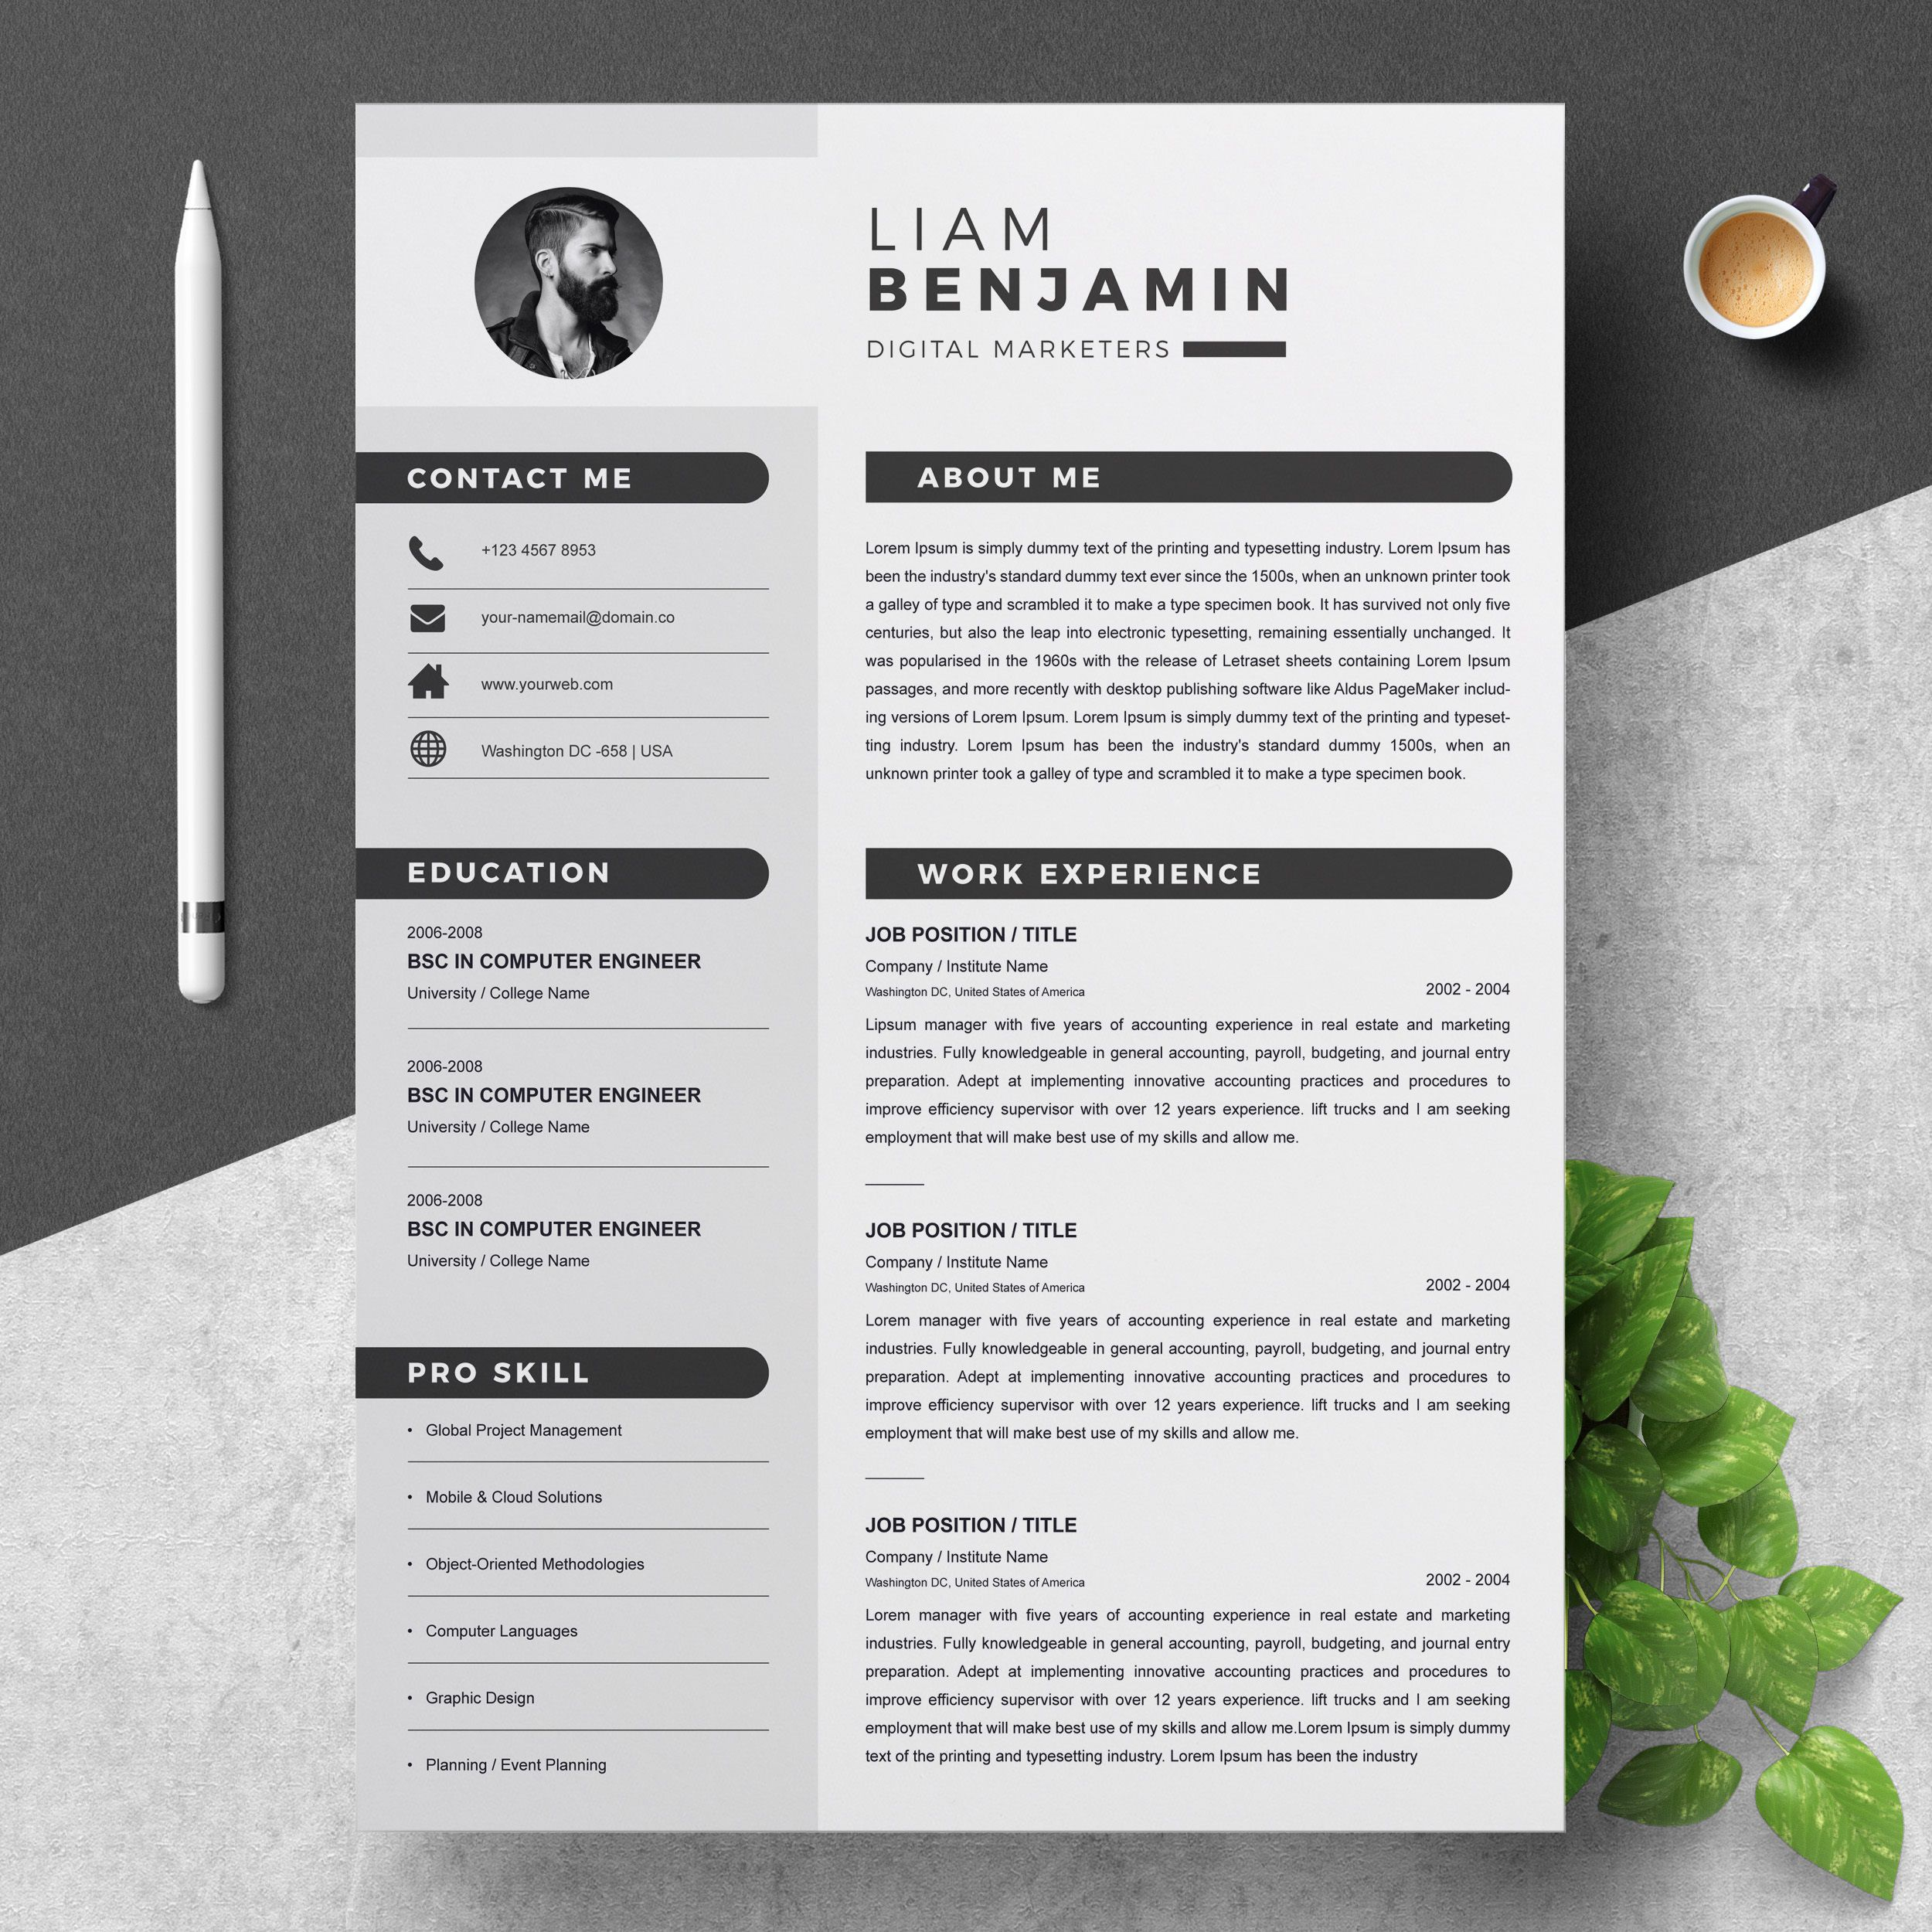 000 Top Free Microsoft Word Resume Template Image  Templates Modern For DownloadFull